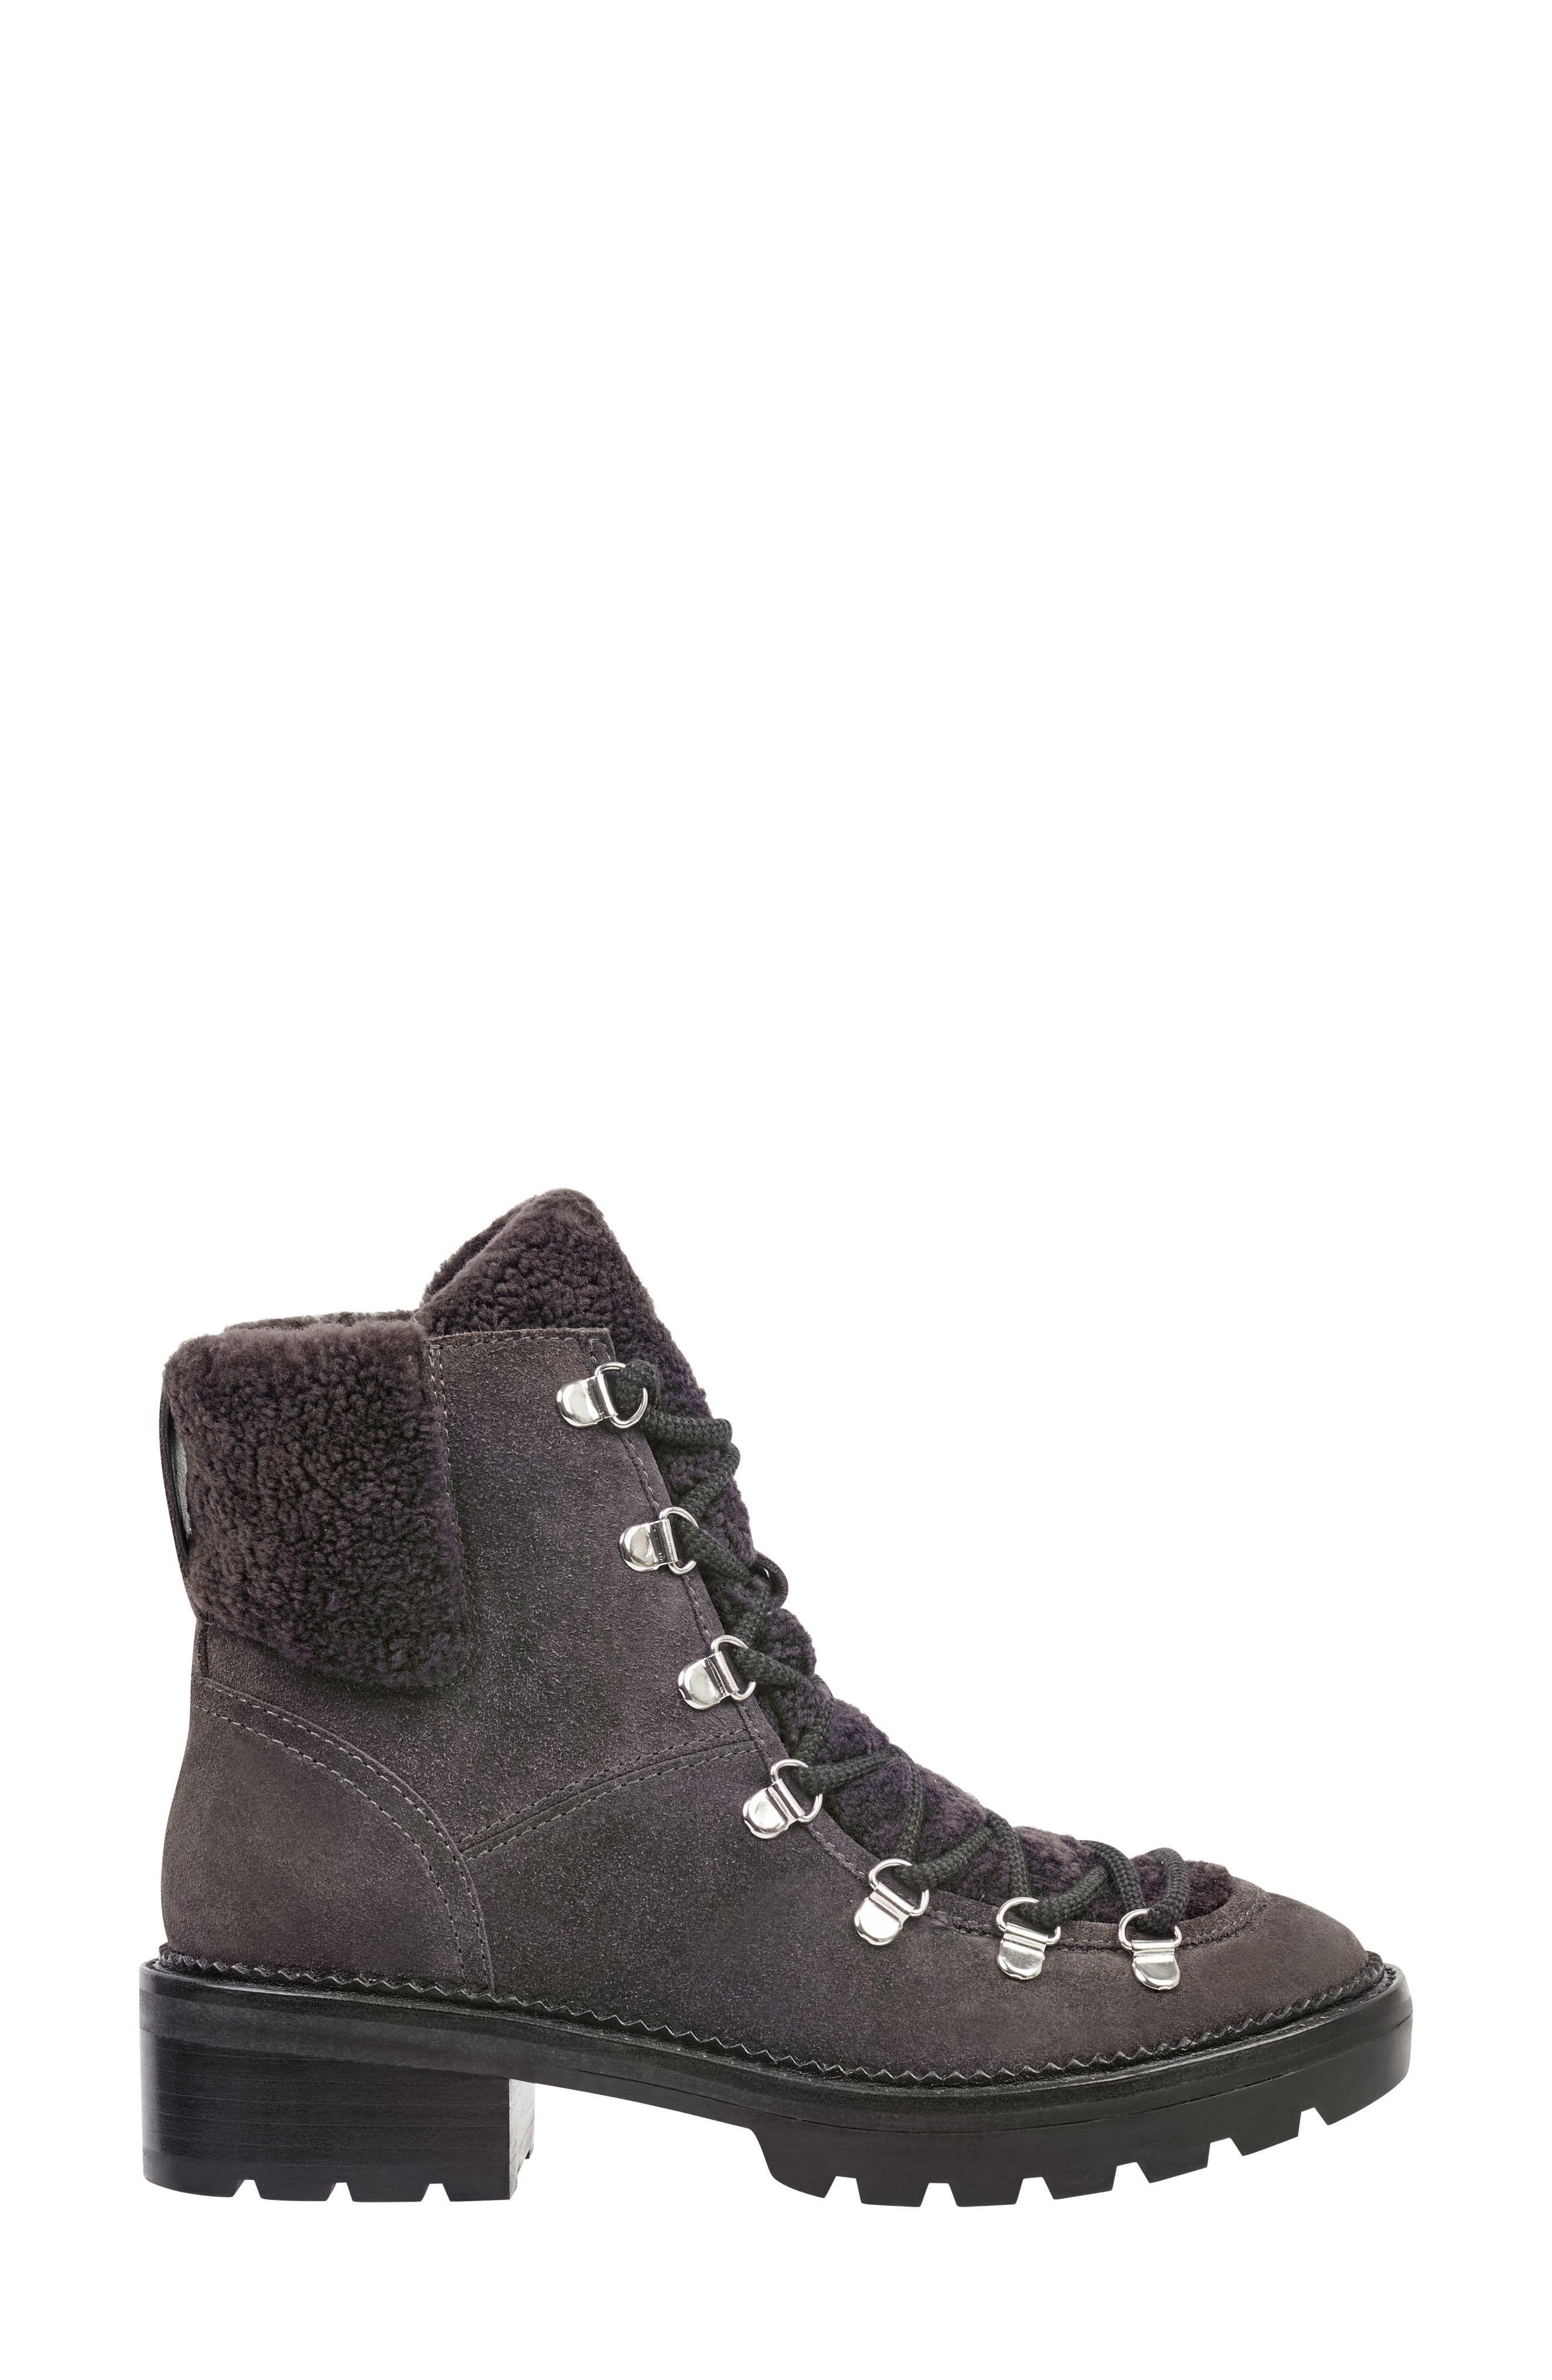 MARC FISHER LTD,                             Capell Genuine Shearling Cuff Lace-Up Boot,                             Alternate thumbnail 3, color,                             GREY SUEDE